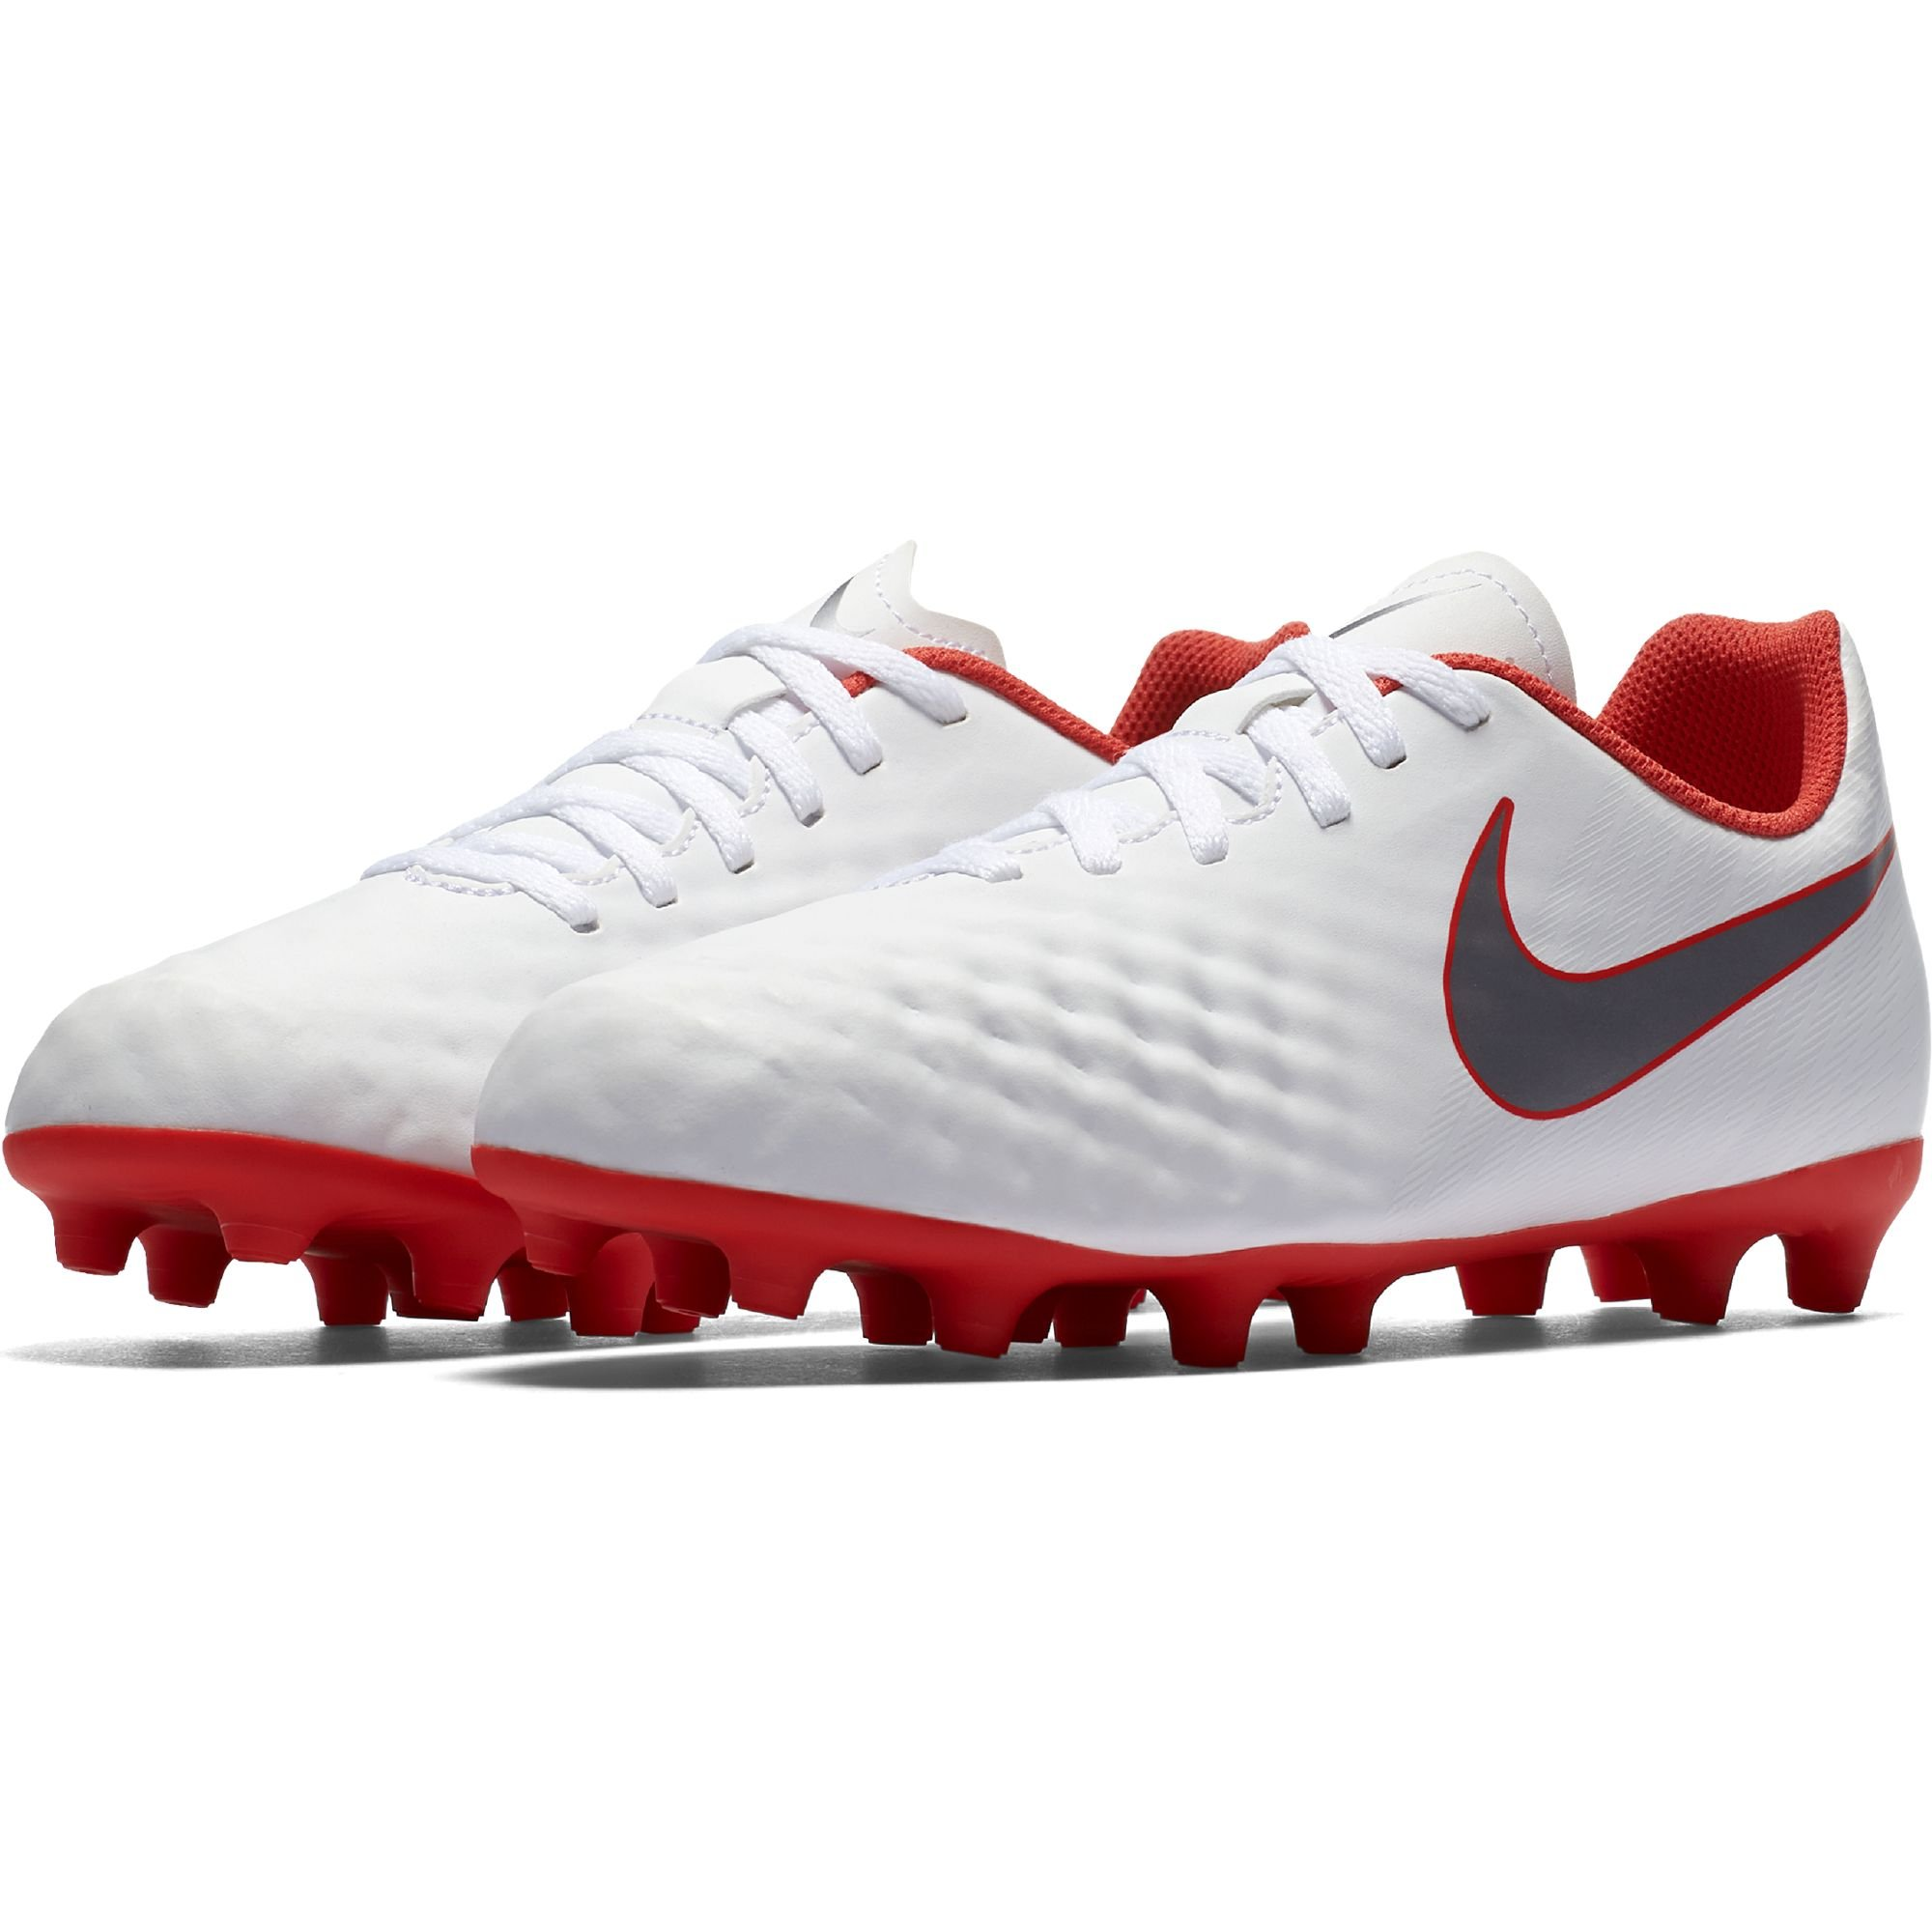 brand new 98fce abaa2 Nike Air Max 2016 India Online Boombah Shoes